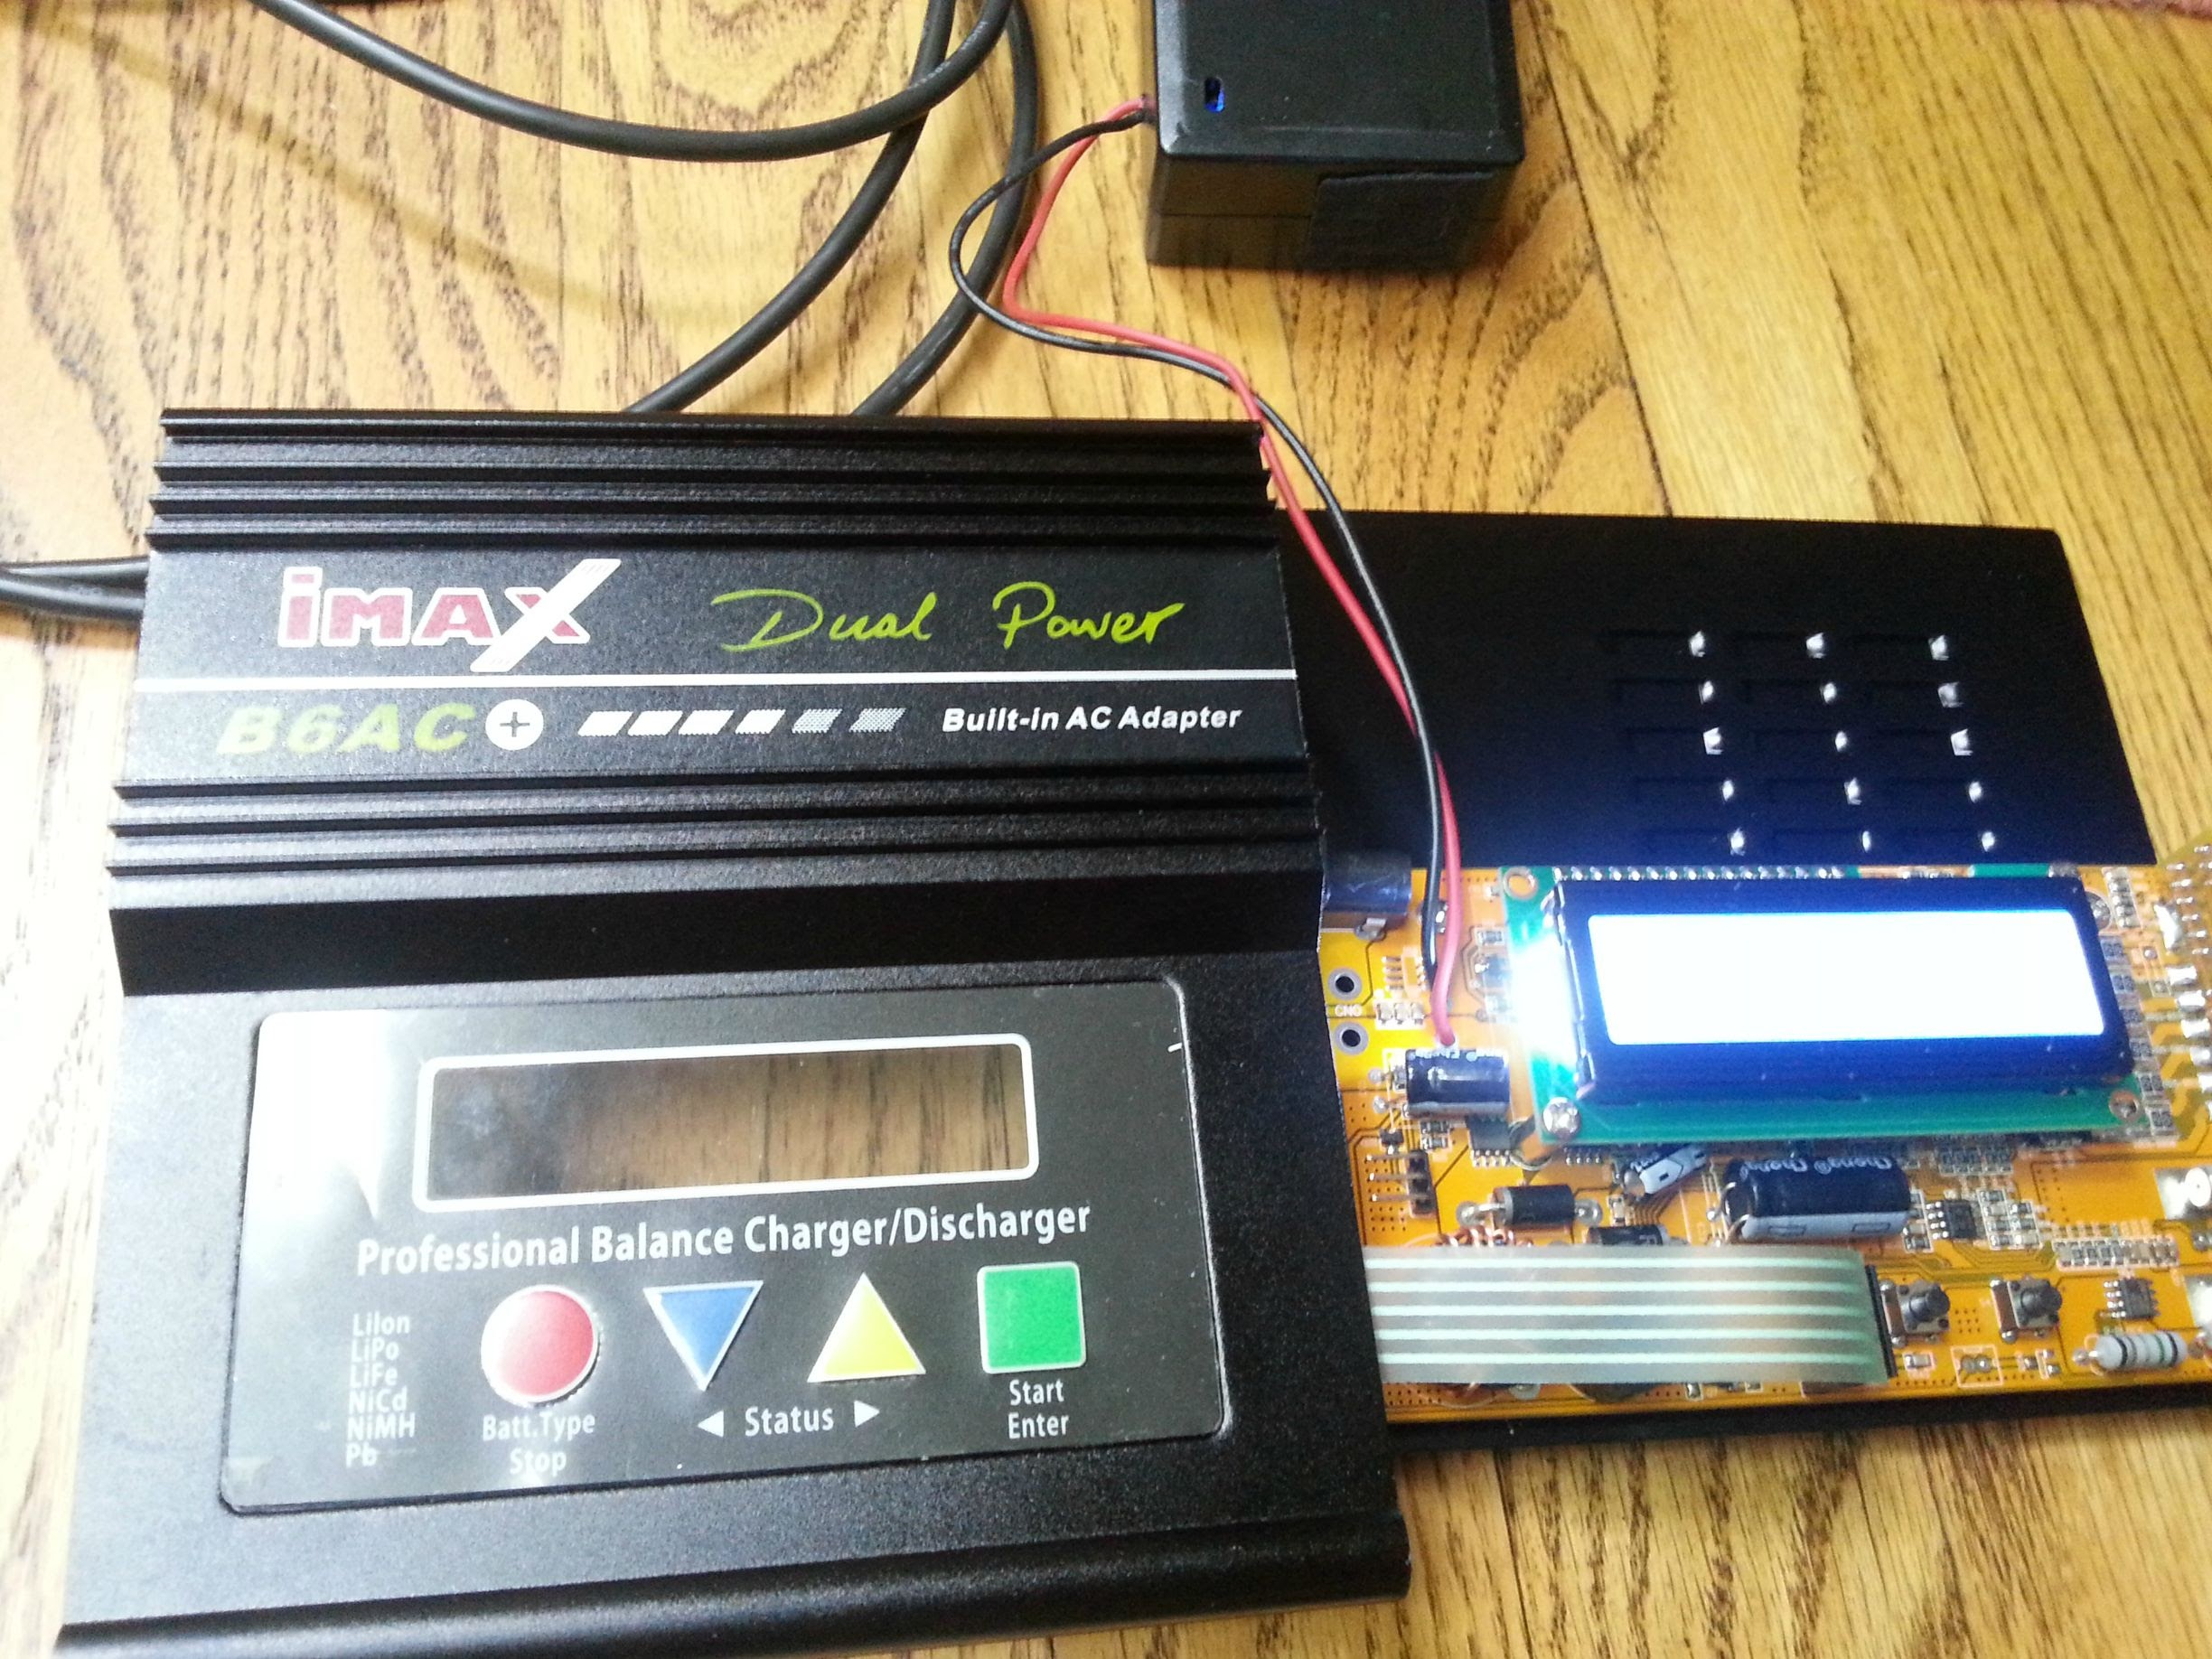 Imax B6 Clone With An Unknown Motherboard And Microcontroller Li Ion Battery Charger Circuit Balancing Attiny26 Lcd Lipo Ive Attached A Picture